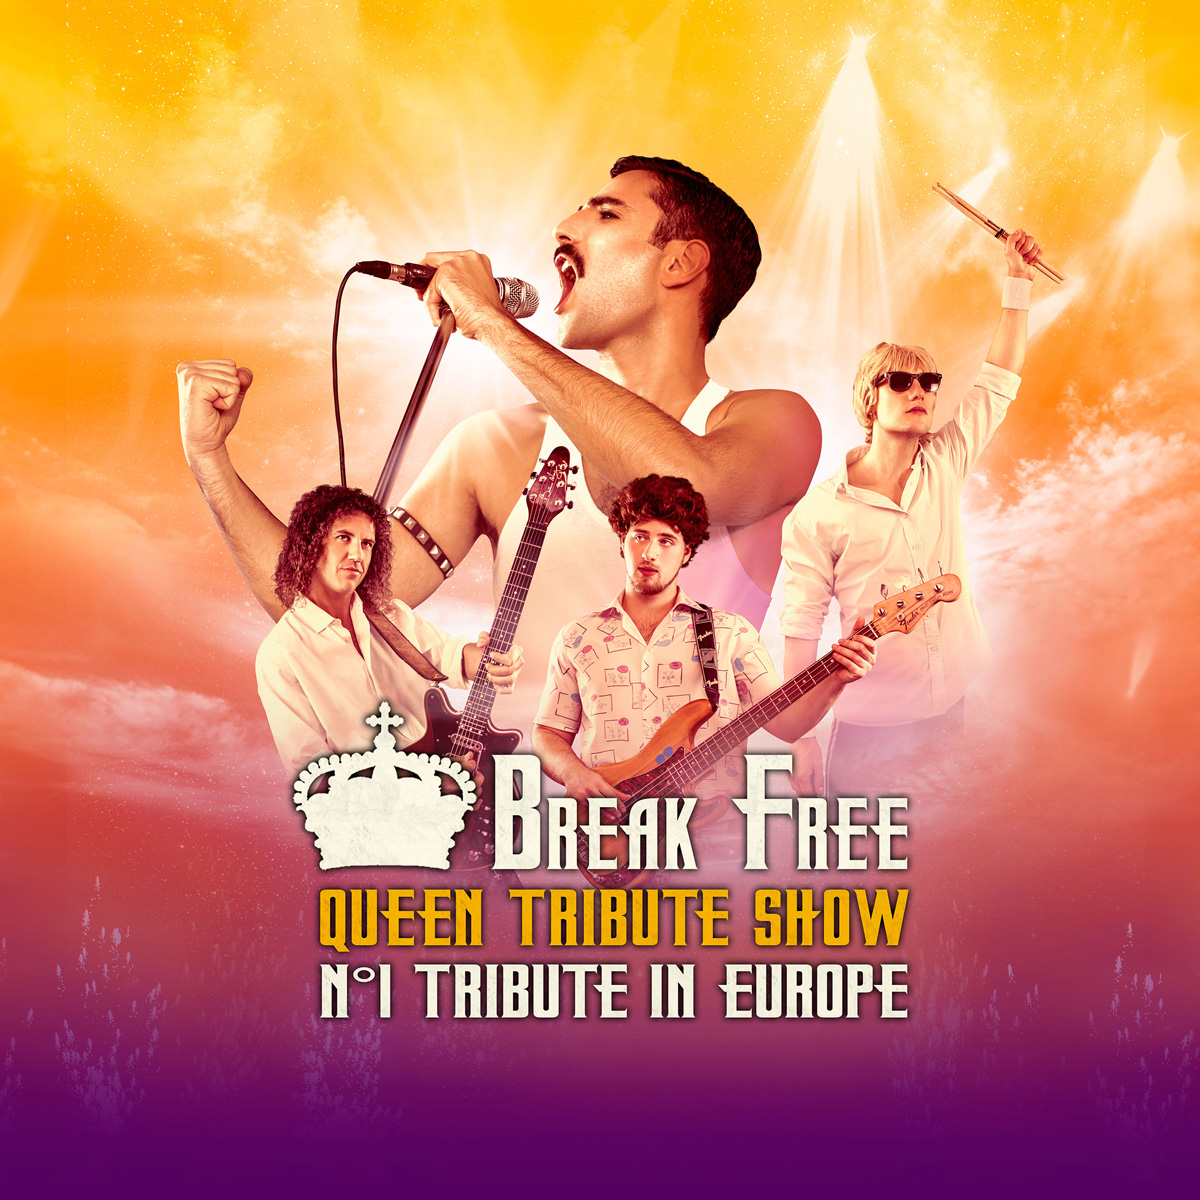 Break Free - Queen Tribute Show